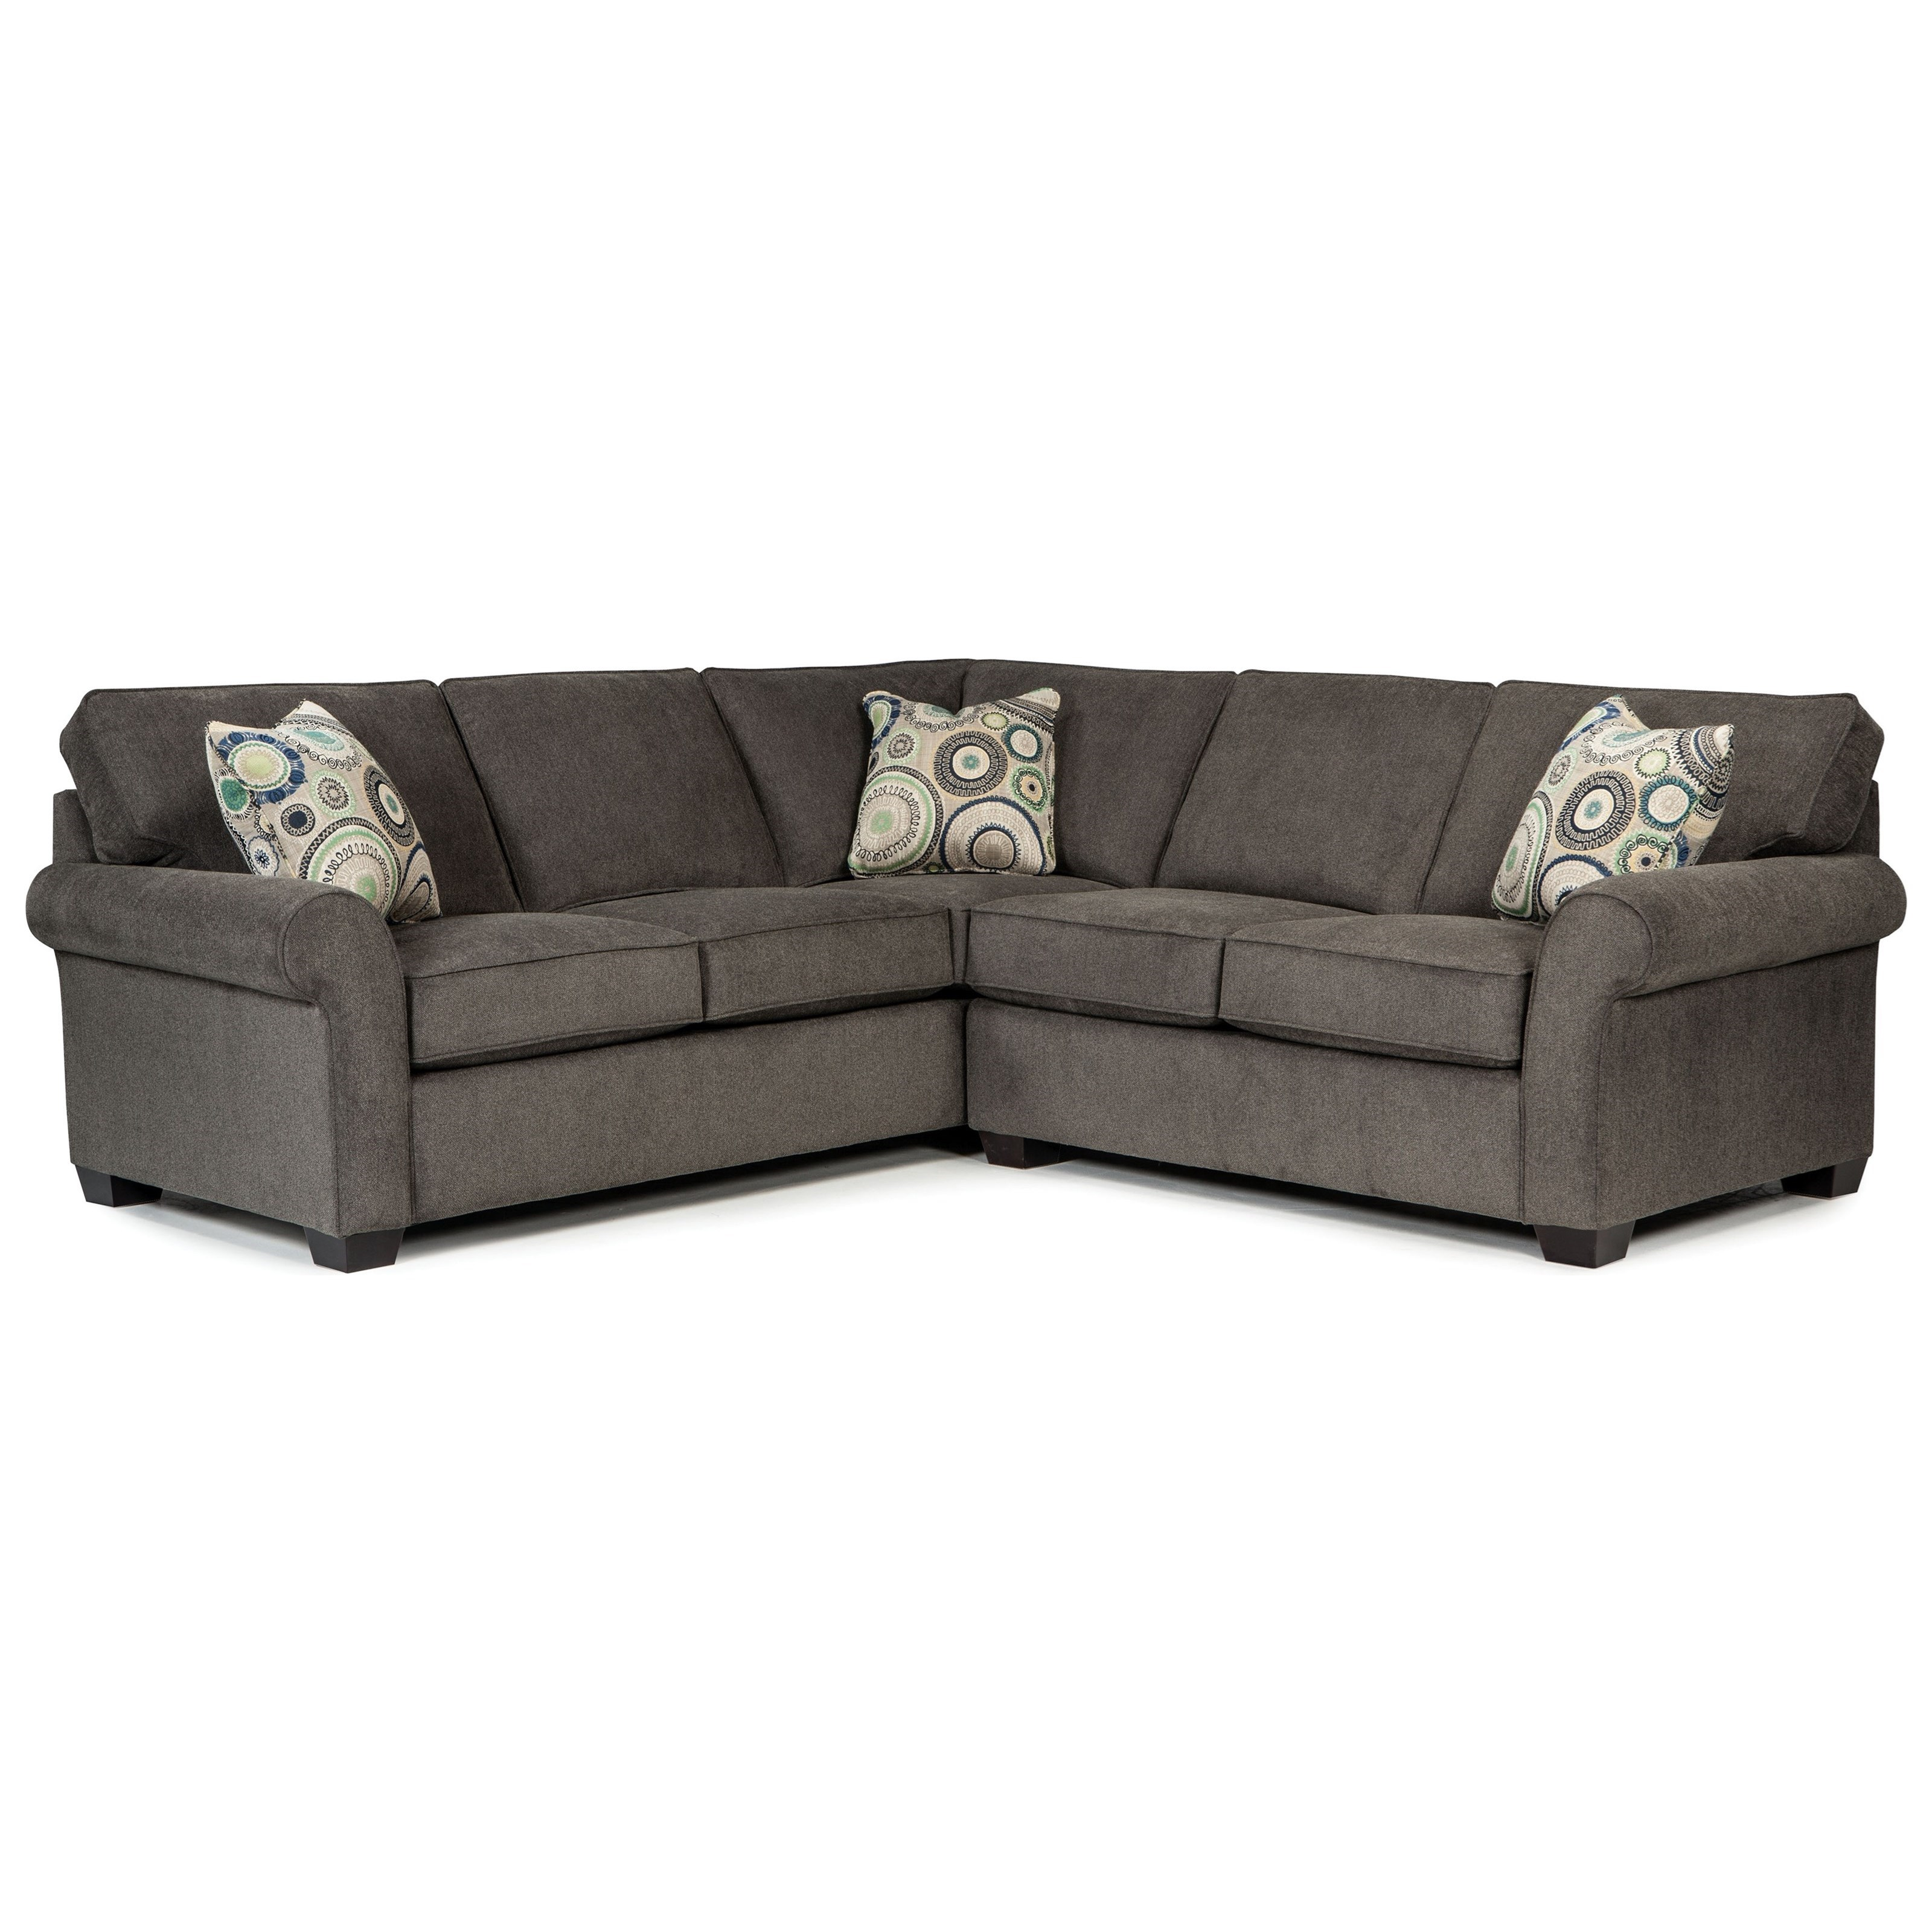 Broyhill Furniture Ethan Two Piece Sectional - Item Number: 6627-1+4-8957-96